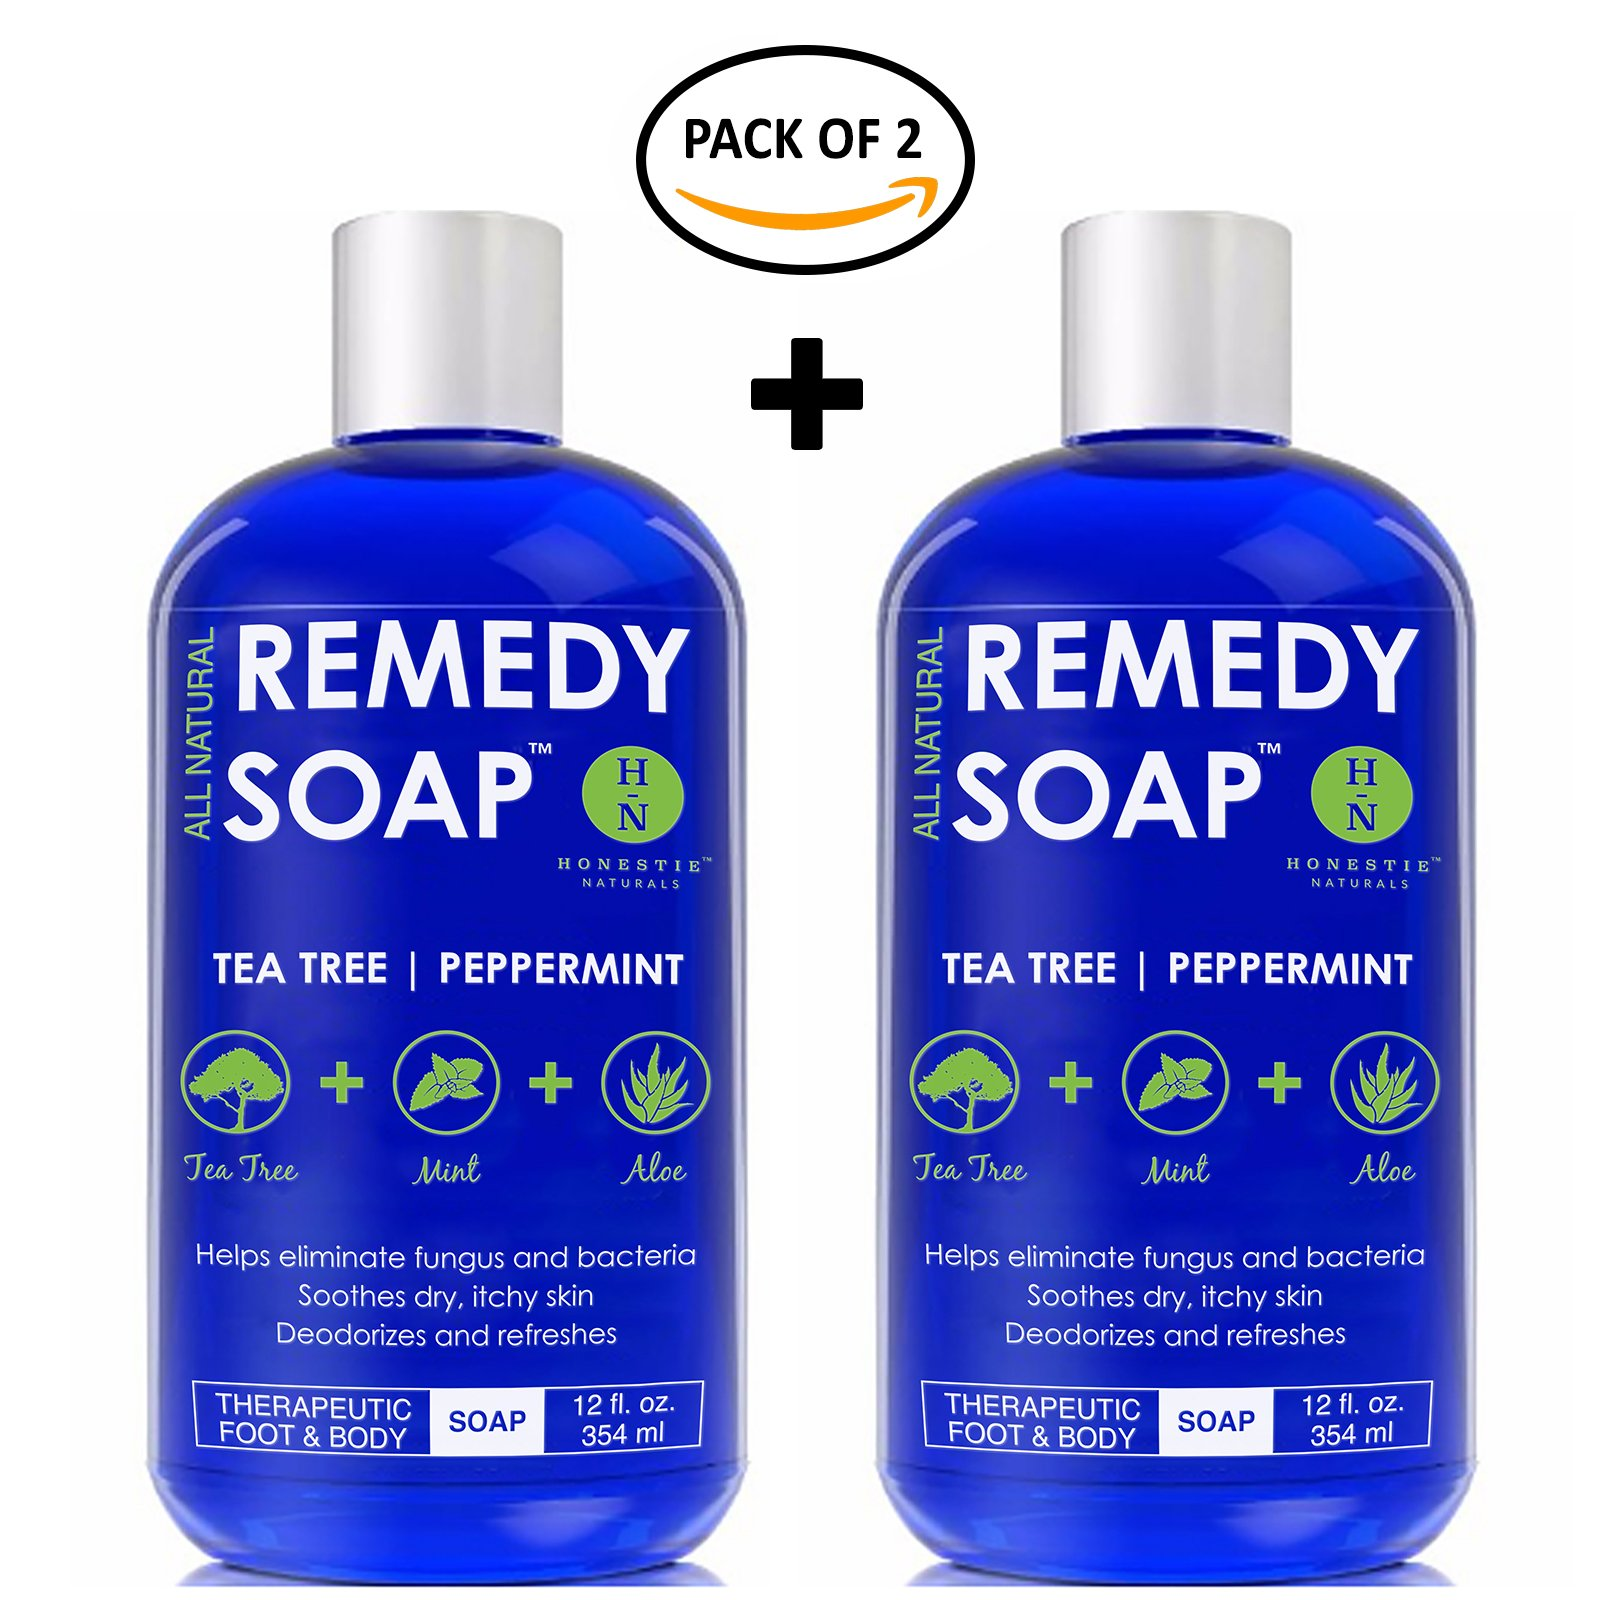 Remedy Antifungal Soap Pack of 2, Helps Wash Away Body Odor, Athlete's Foot, Nail Fungus, Ringworm, Jock Itch, Yeast Infections & Skin Irritations. 100% Natural with Tea Tree Oil, Mint & Aloe 12 oz